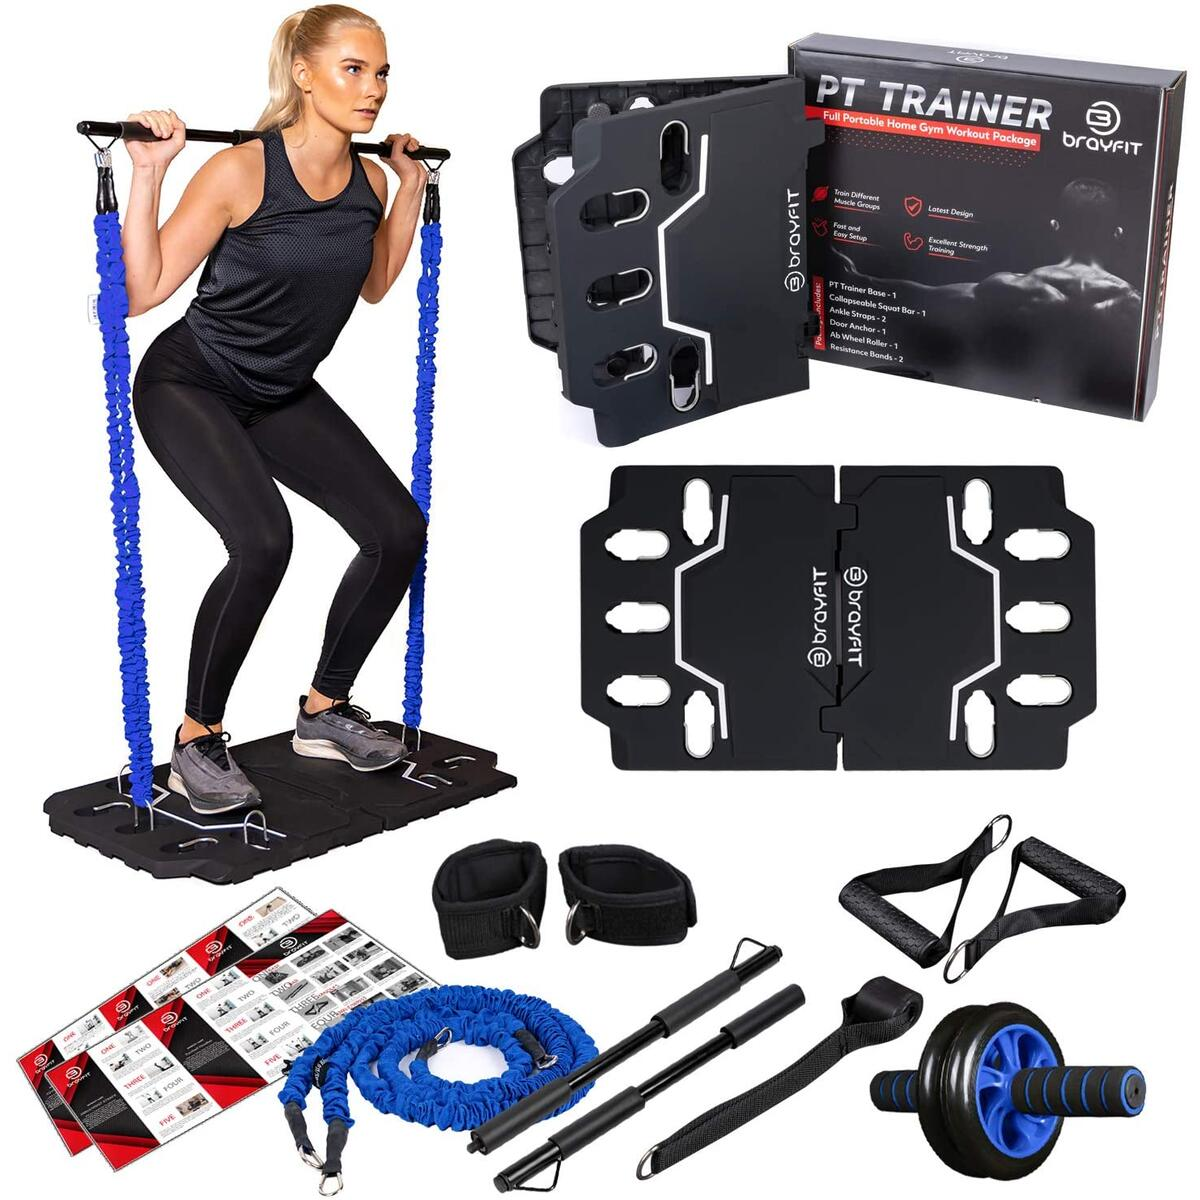 BRAYFIT Portable Home Gym Equipment 10-in-1 Full Body Workout System Including Ab Roller Wheel, Elastic Resistance Bands, Squat Bar, and Door Anchor, for a Total Gym